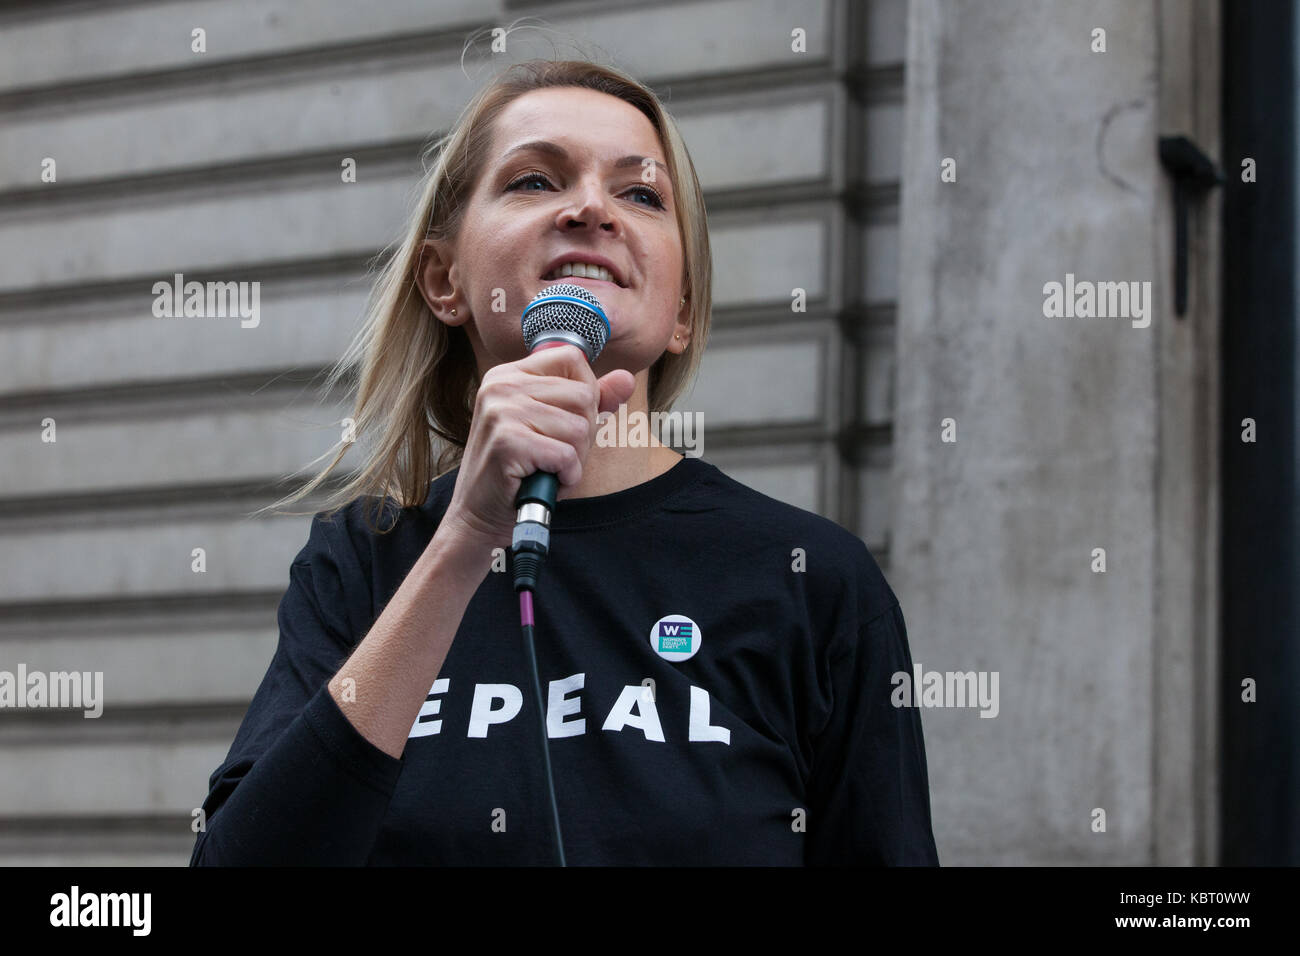 London, UK. 30th September, 2017. Sophie Walker, Leader of the Women's Equality Party, addresses campaigners from Stock Photo